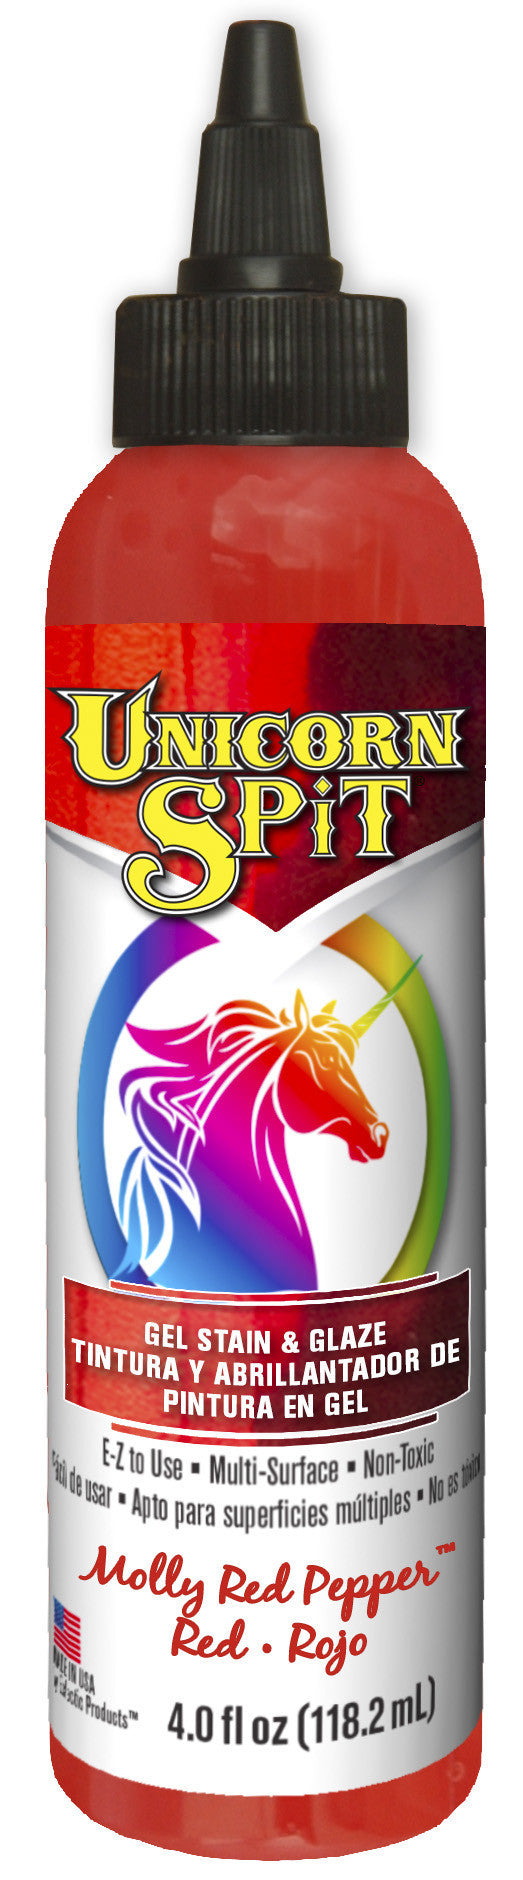 Unicorn Spit Molly Red Pepper 4 oz 5770002